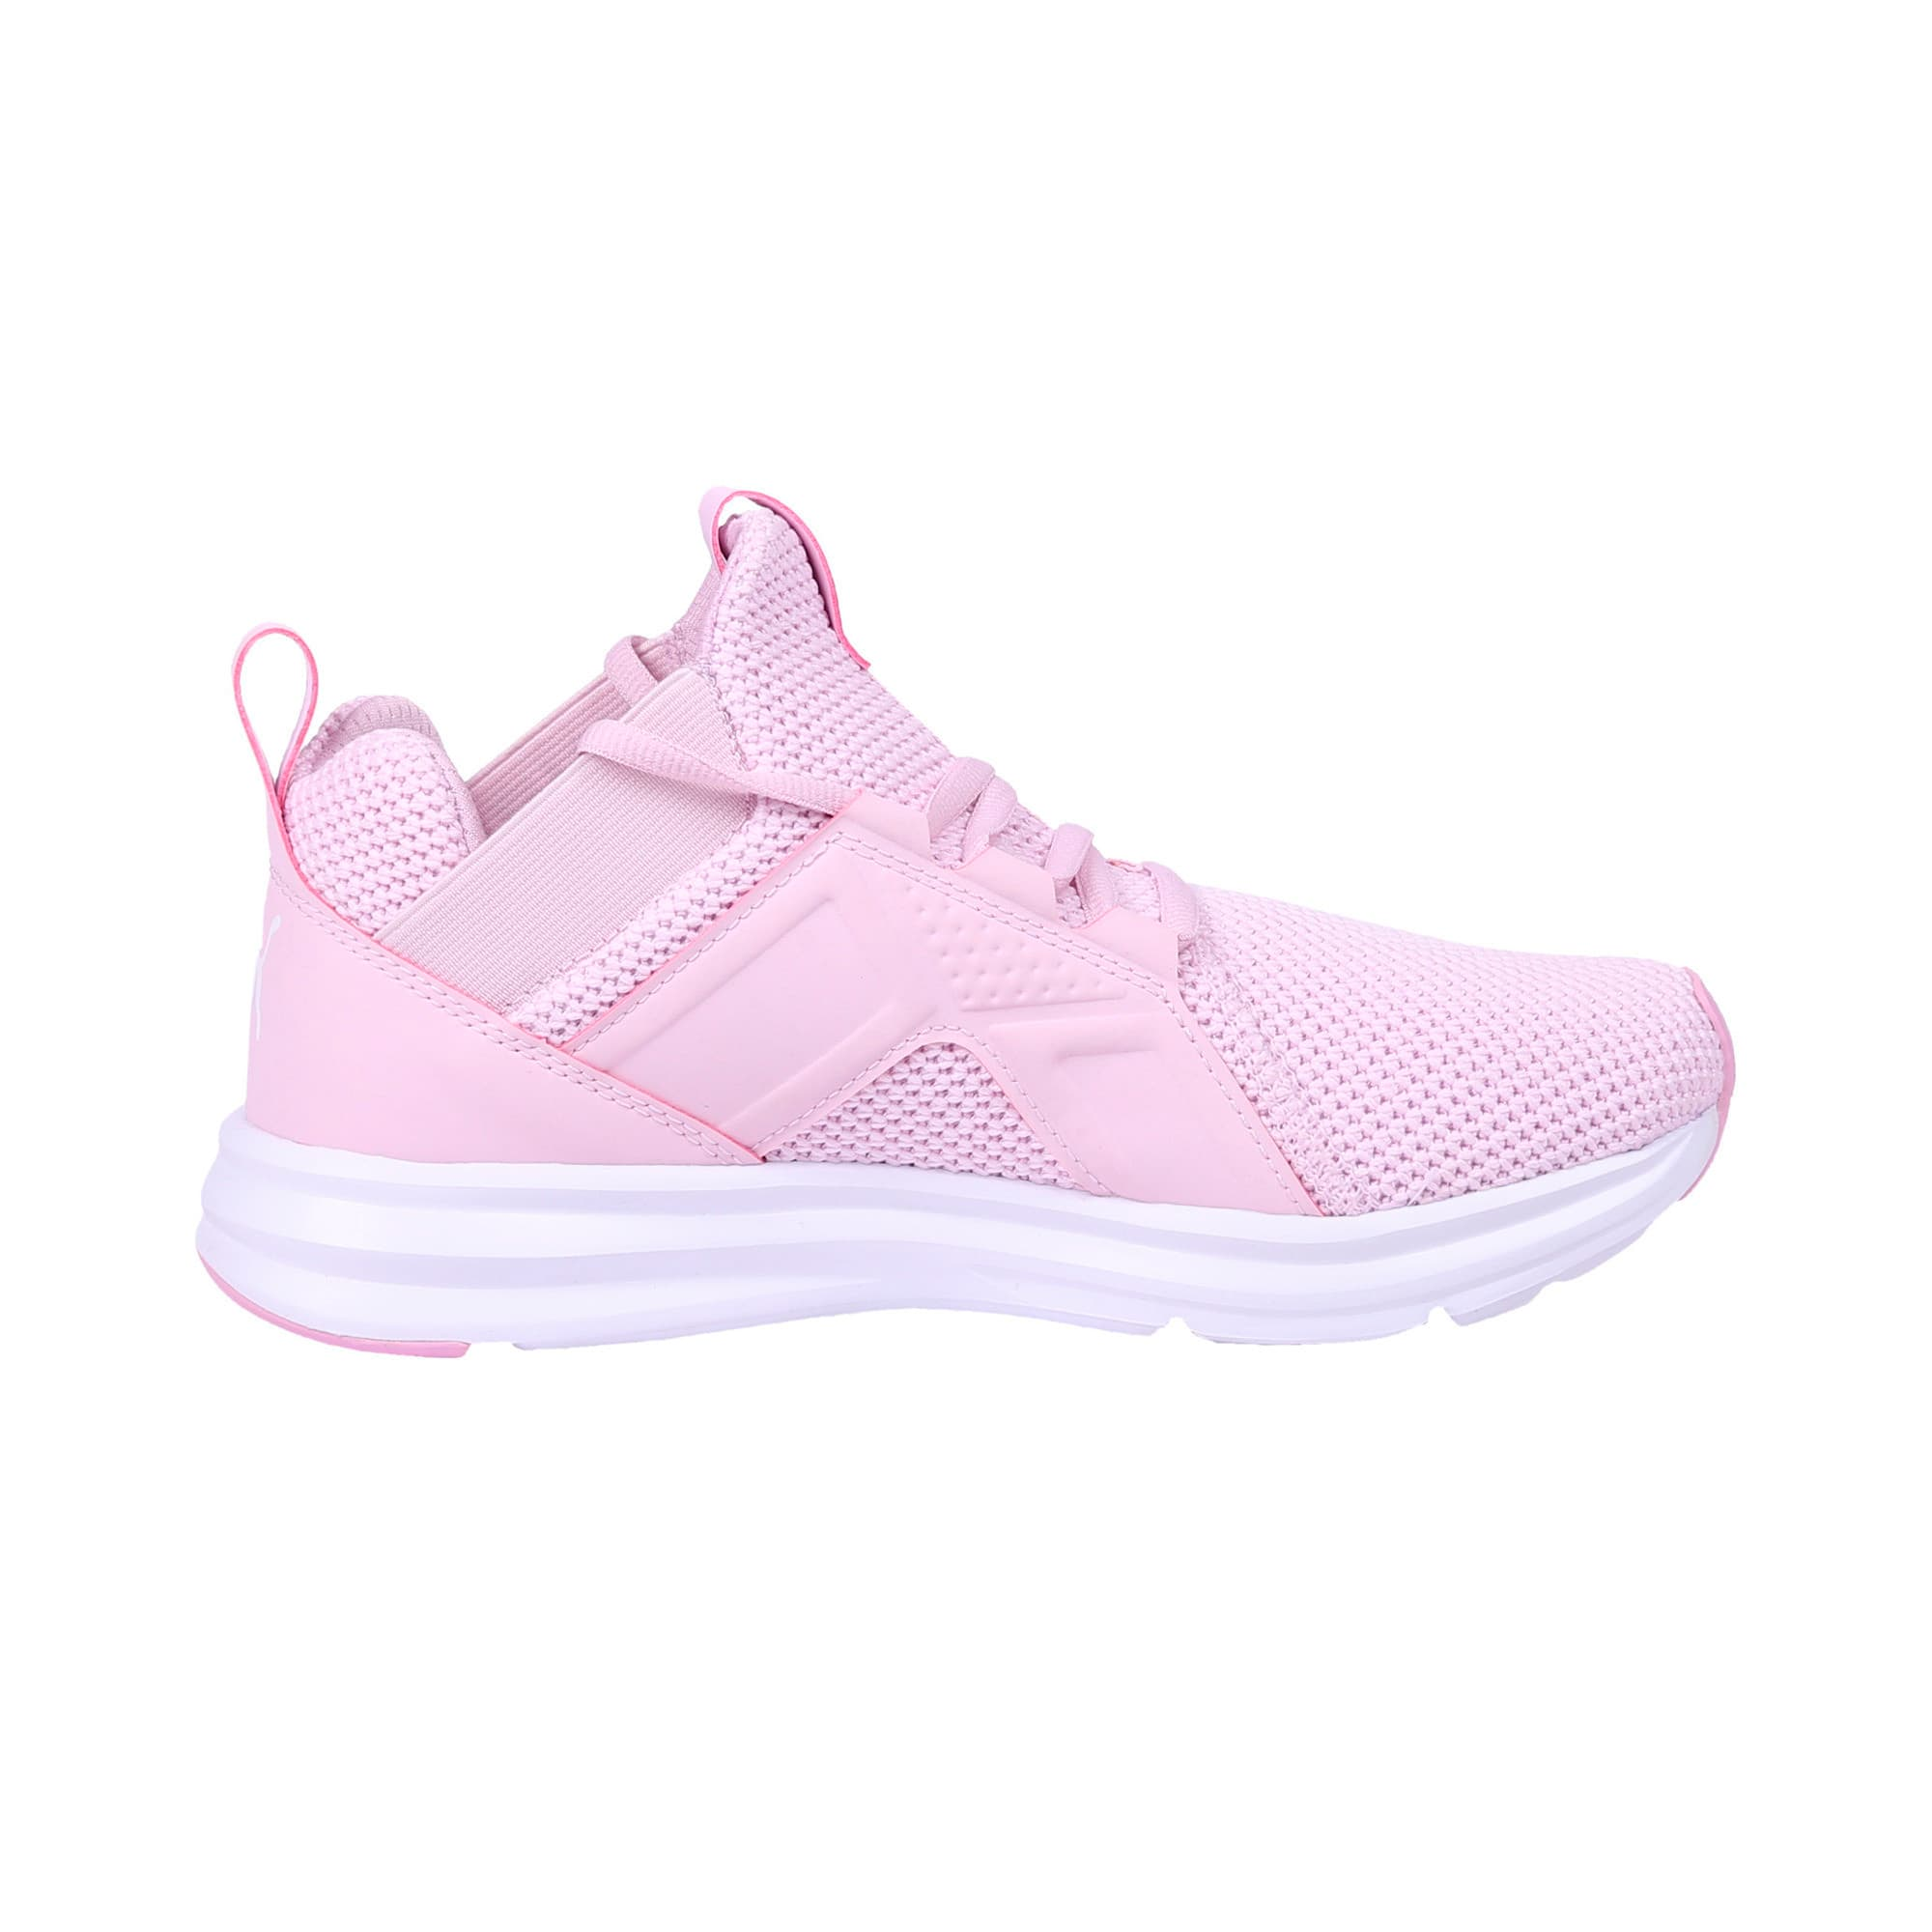 Thumbnail 5 of Enzo Weave Women's Trainers, Winsome Orchid-Puma White, medium-IND